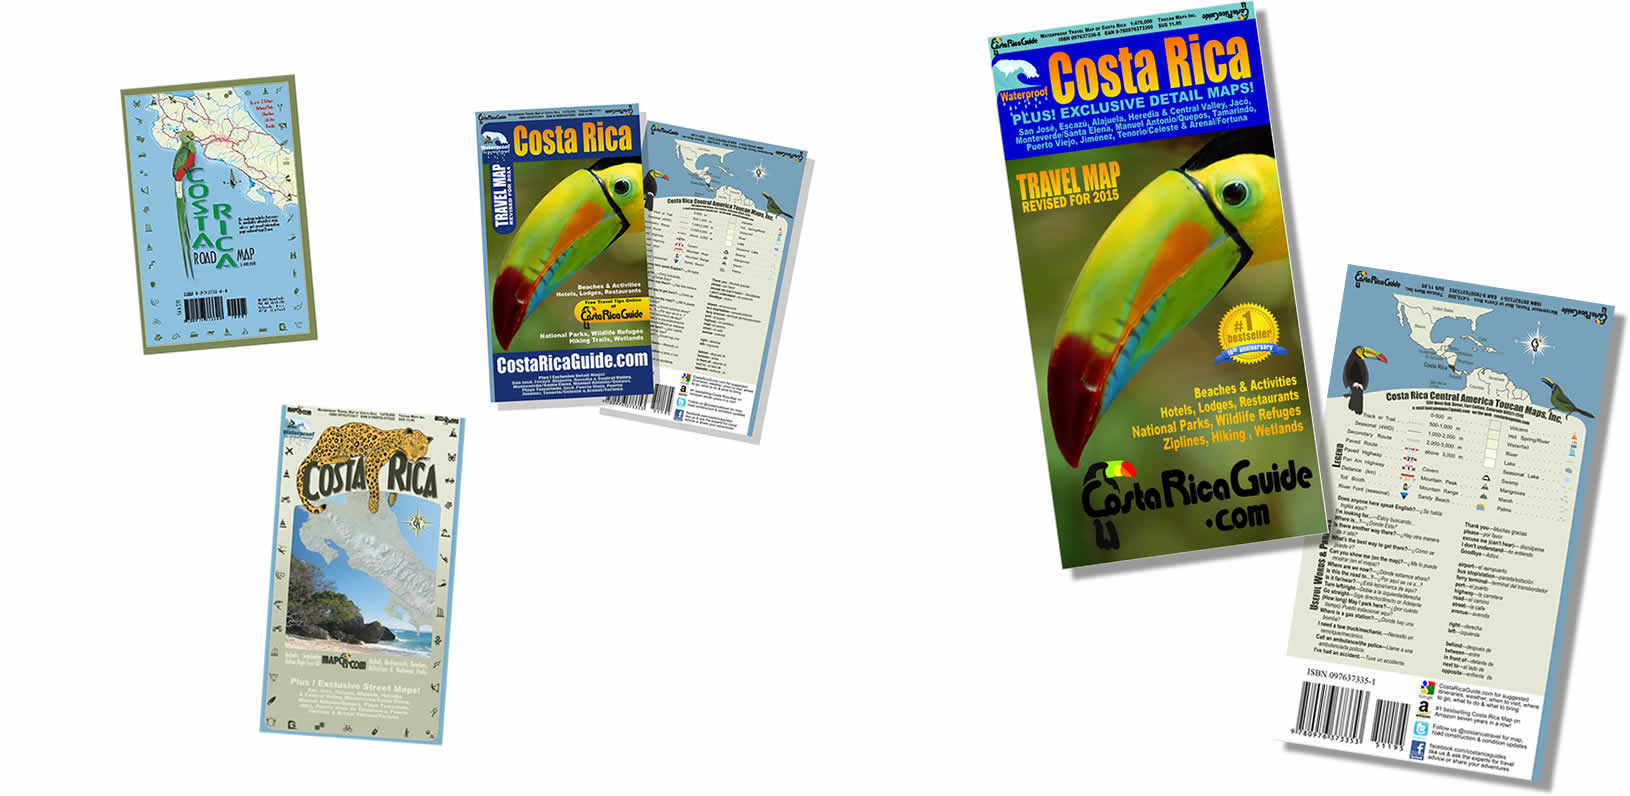 waterproof travel map of costa rica The Story Of Costa Rica Guide waterproof travel map of costa rica